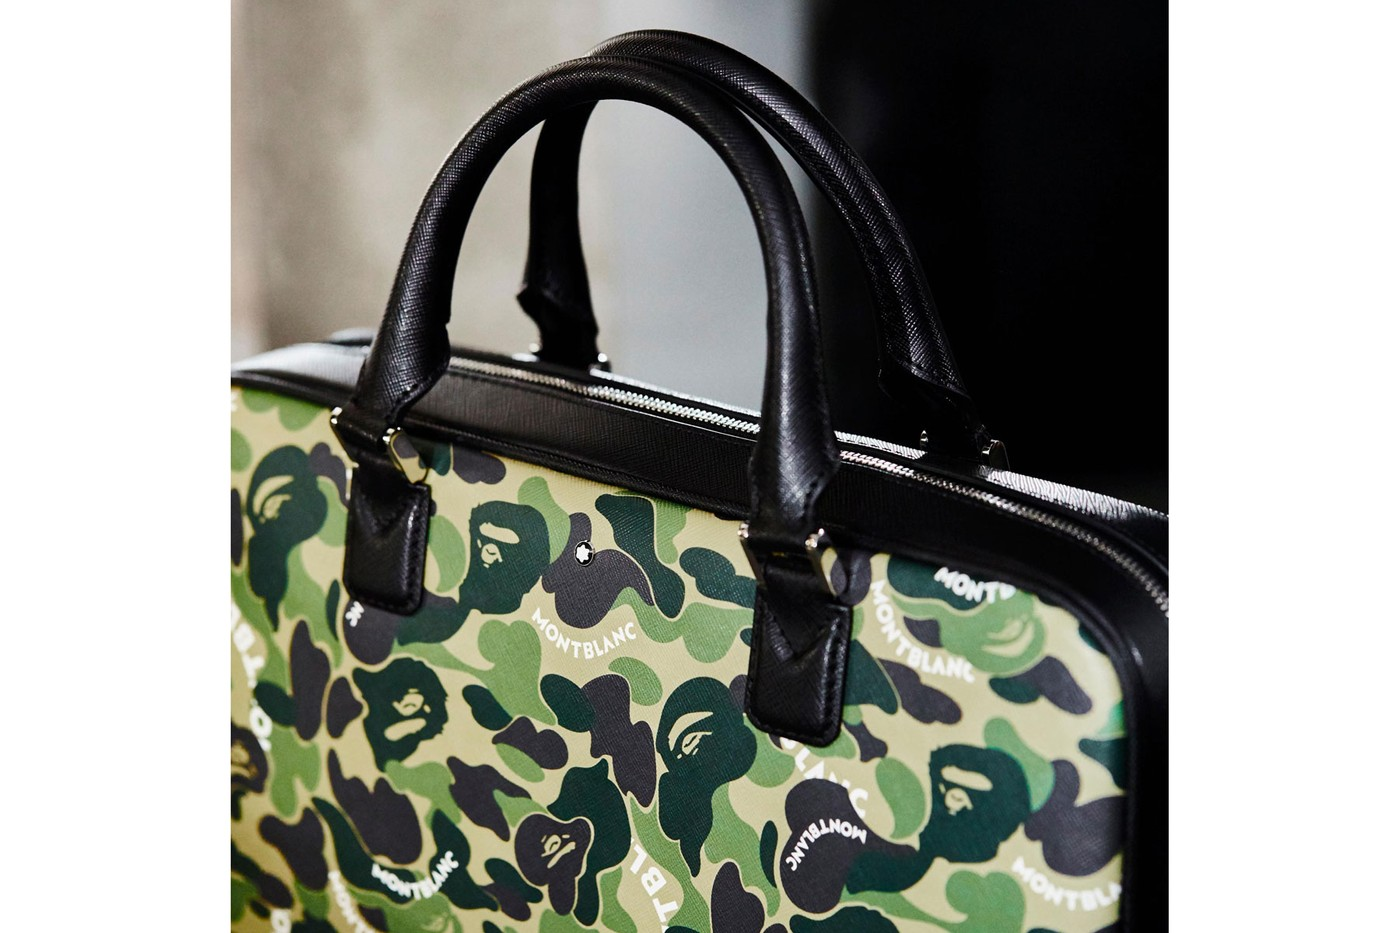 https___hypebeast.com_image_2019_06_bape-a-bathing-ape-montblanc-ss19-leather-goods-collection-9.jpg